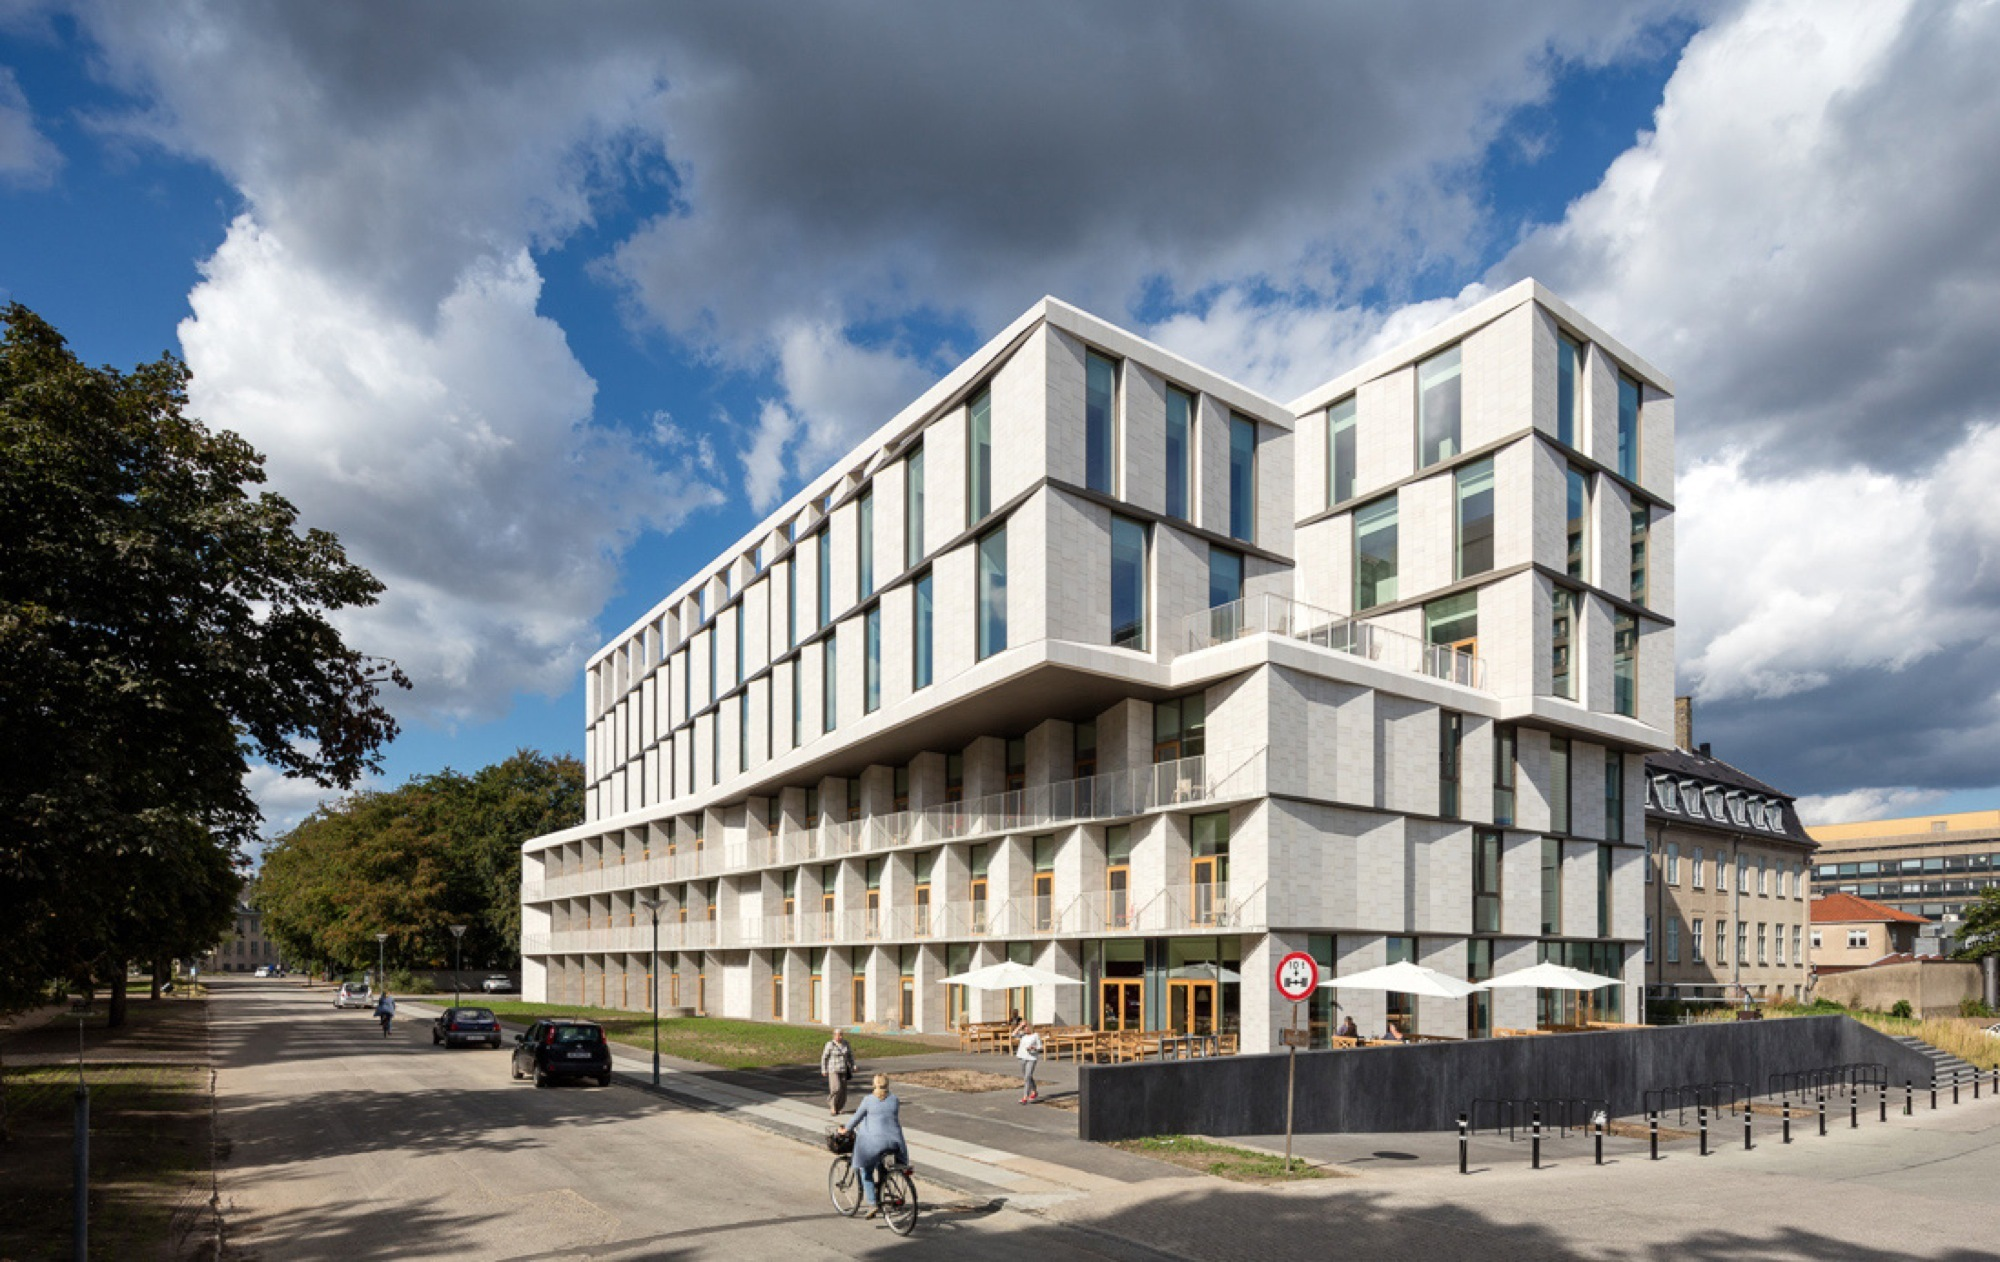 Patient Hotel 3xn Archdaily